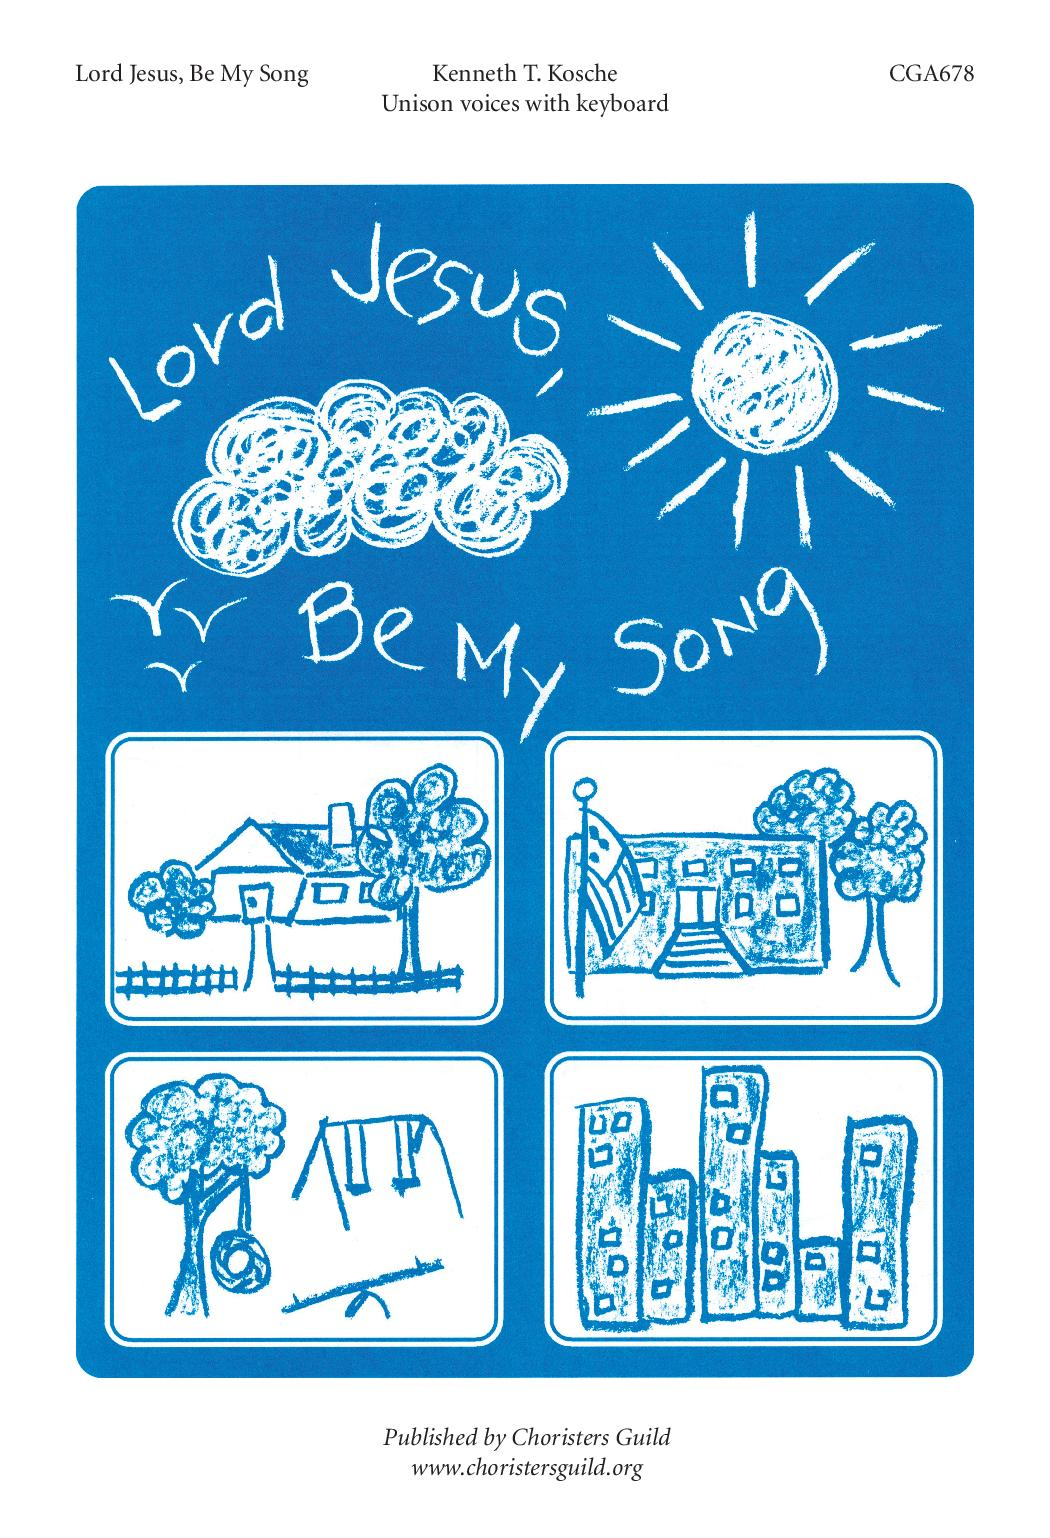 Lord Jesus, Be My Song